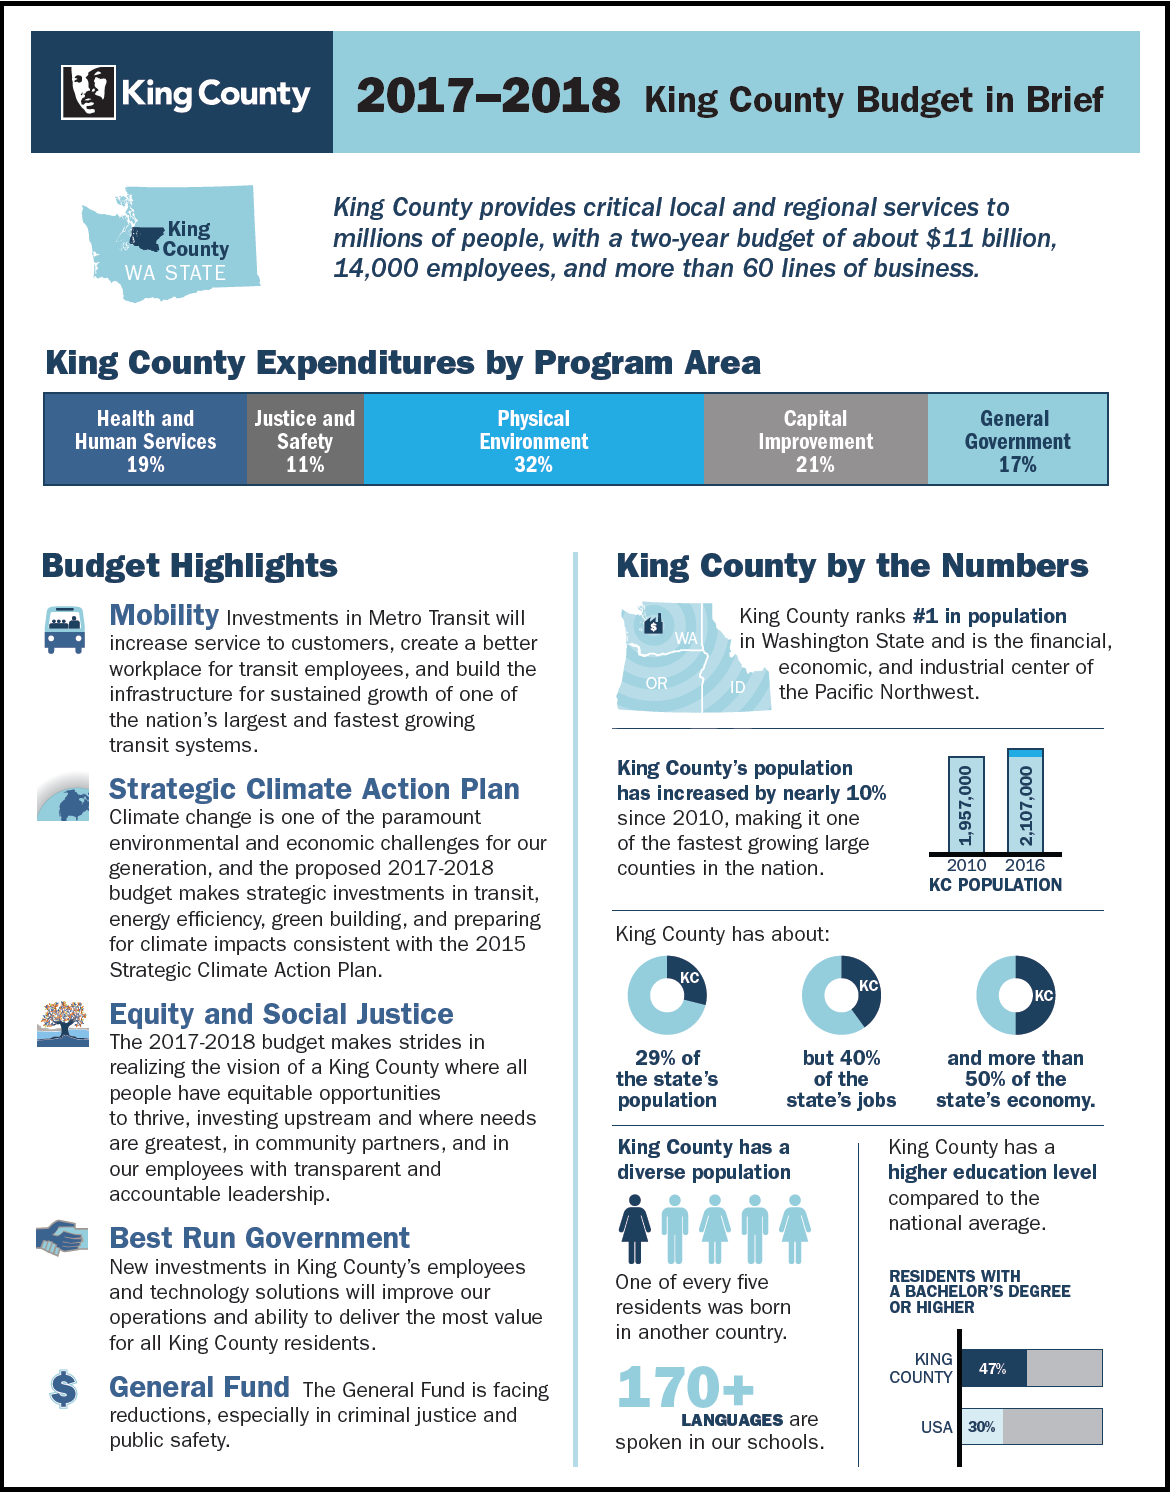 King County Budget in Brief 2017-2018